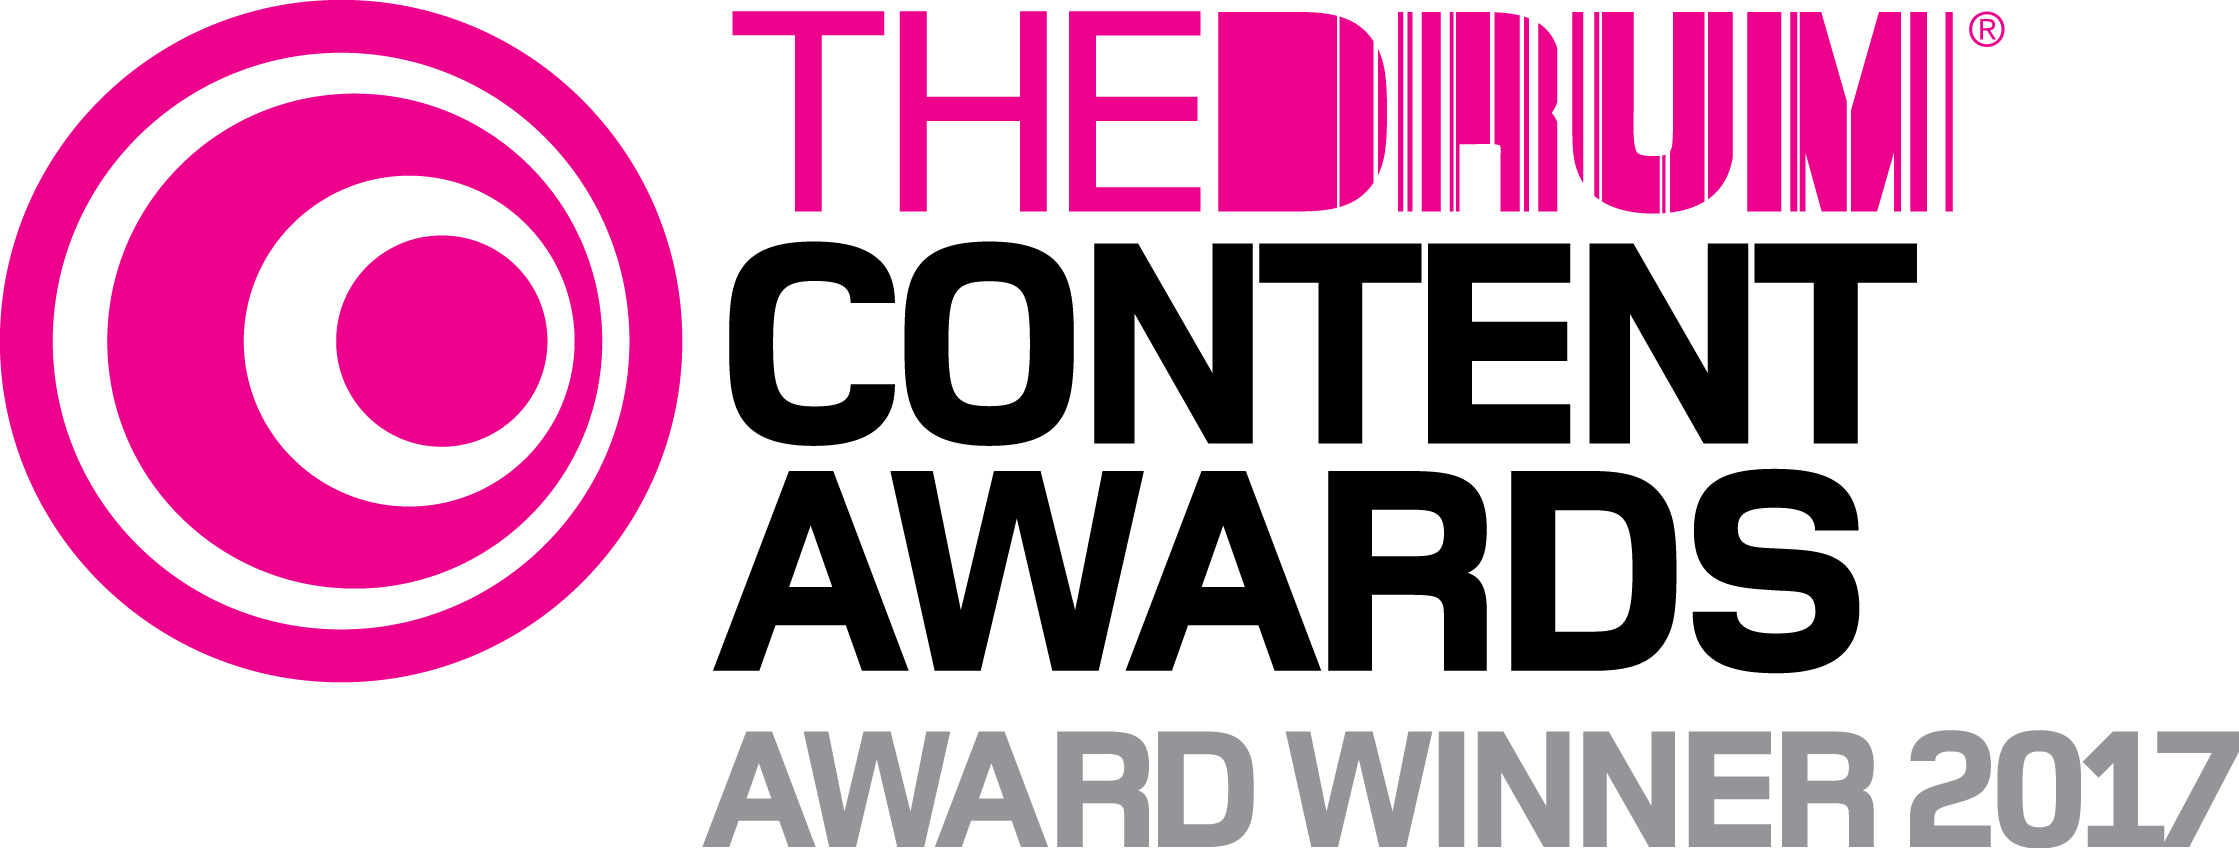 http://www.thedrumcontentawards.com/drum-content-awards-2017/best-financial-services-content-marketing-strategycampaign/driverless-cars-gearing-up-for-a-new-era-of-motor-insurance